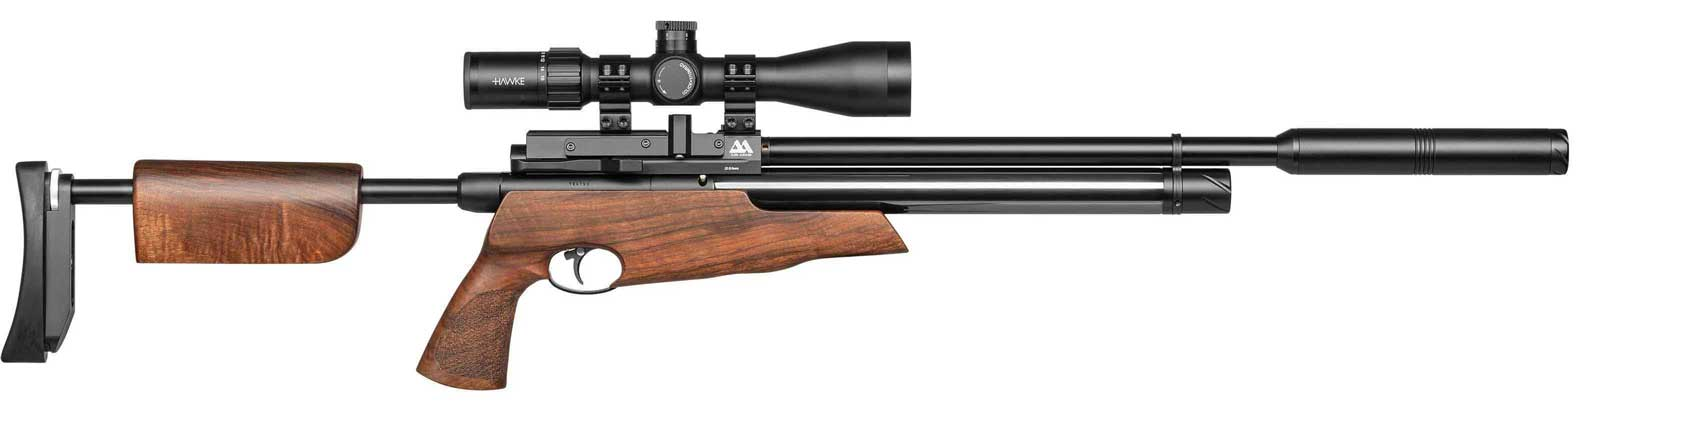 S510 TDR Take Down Rifle